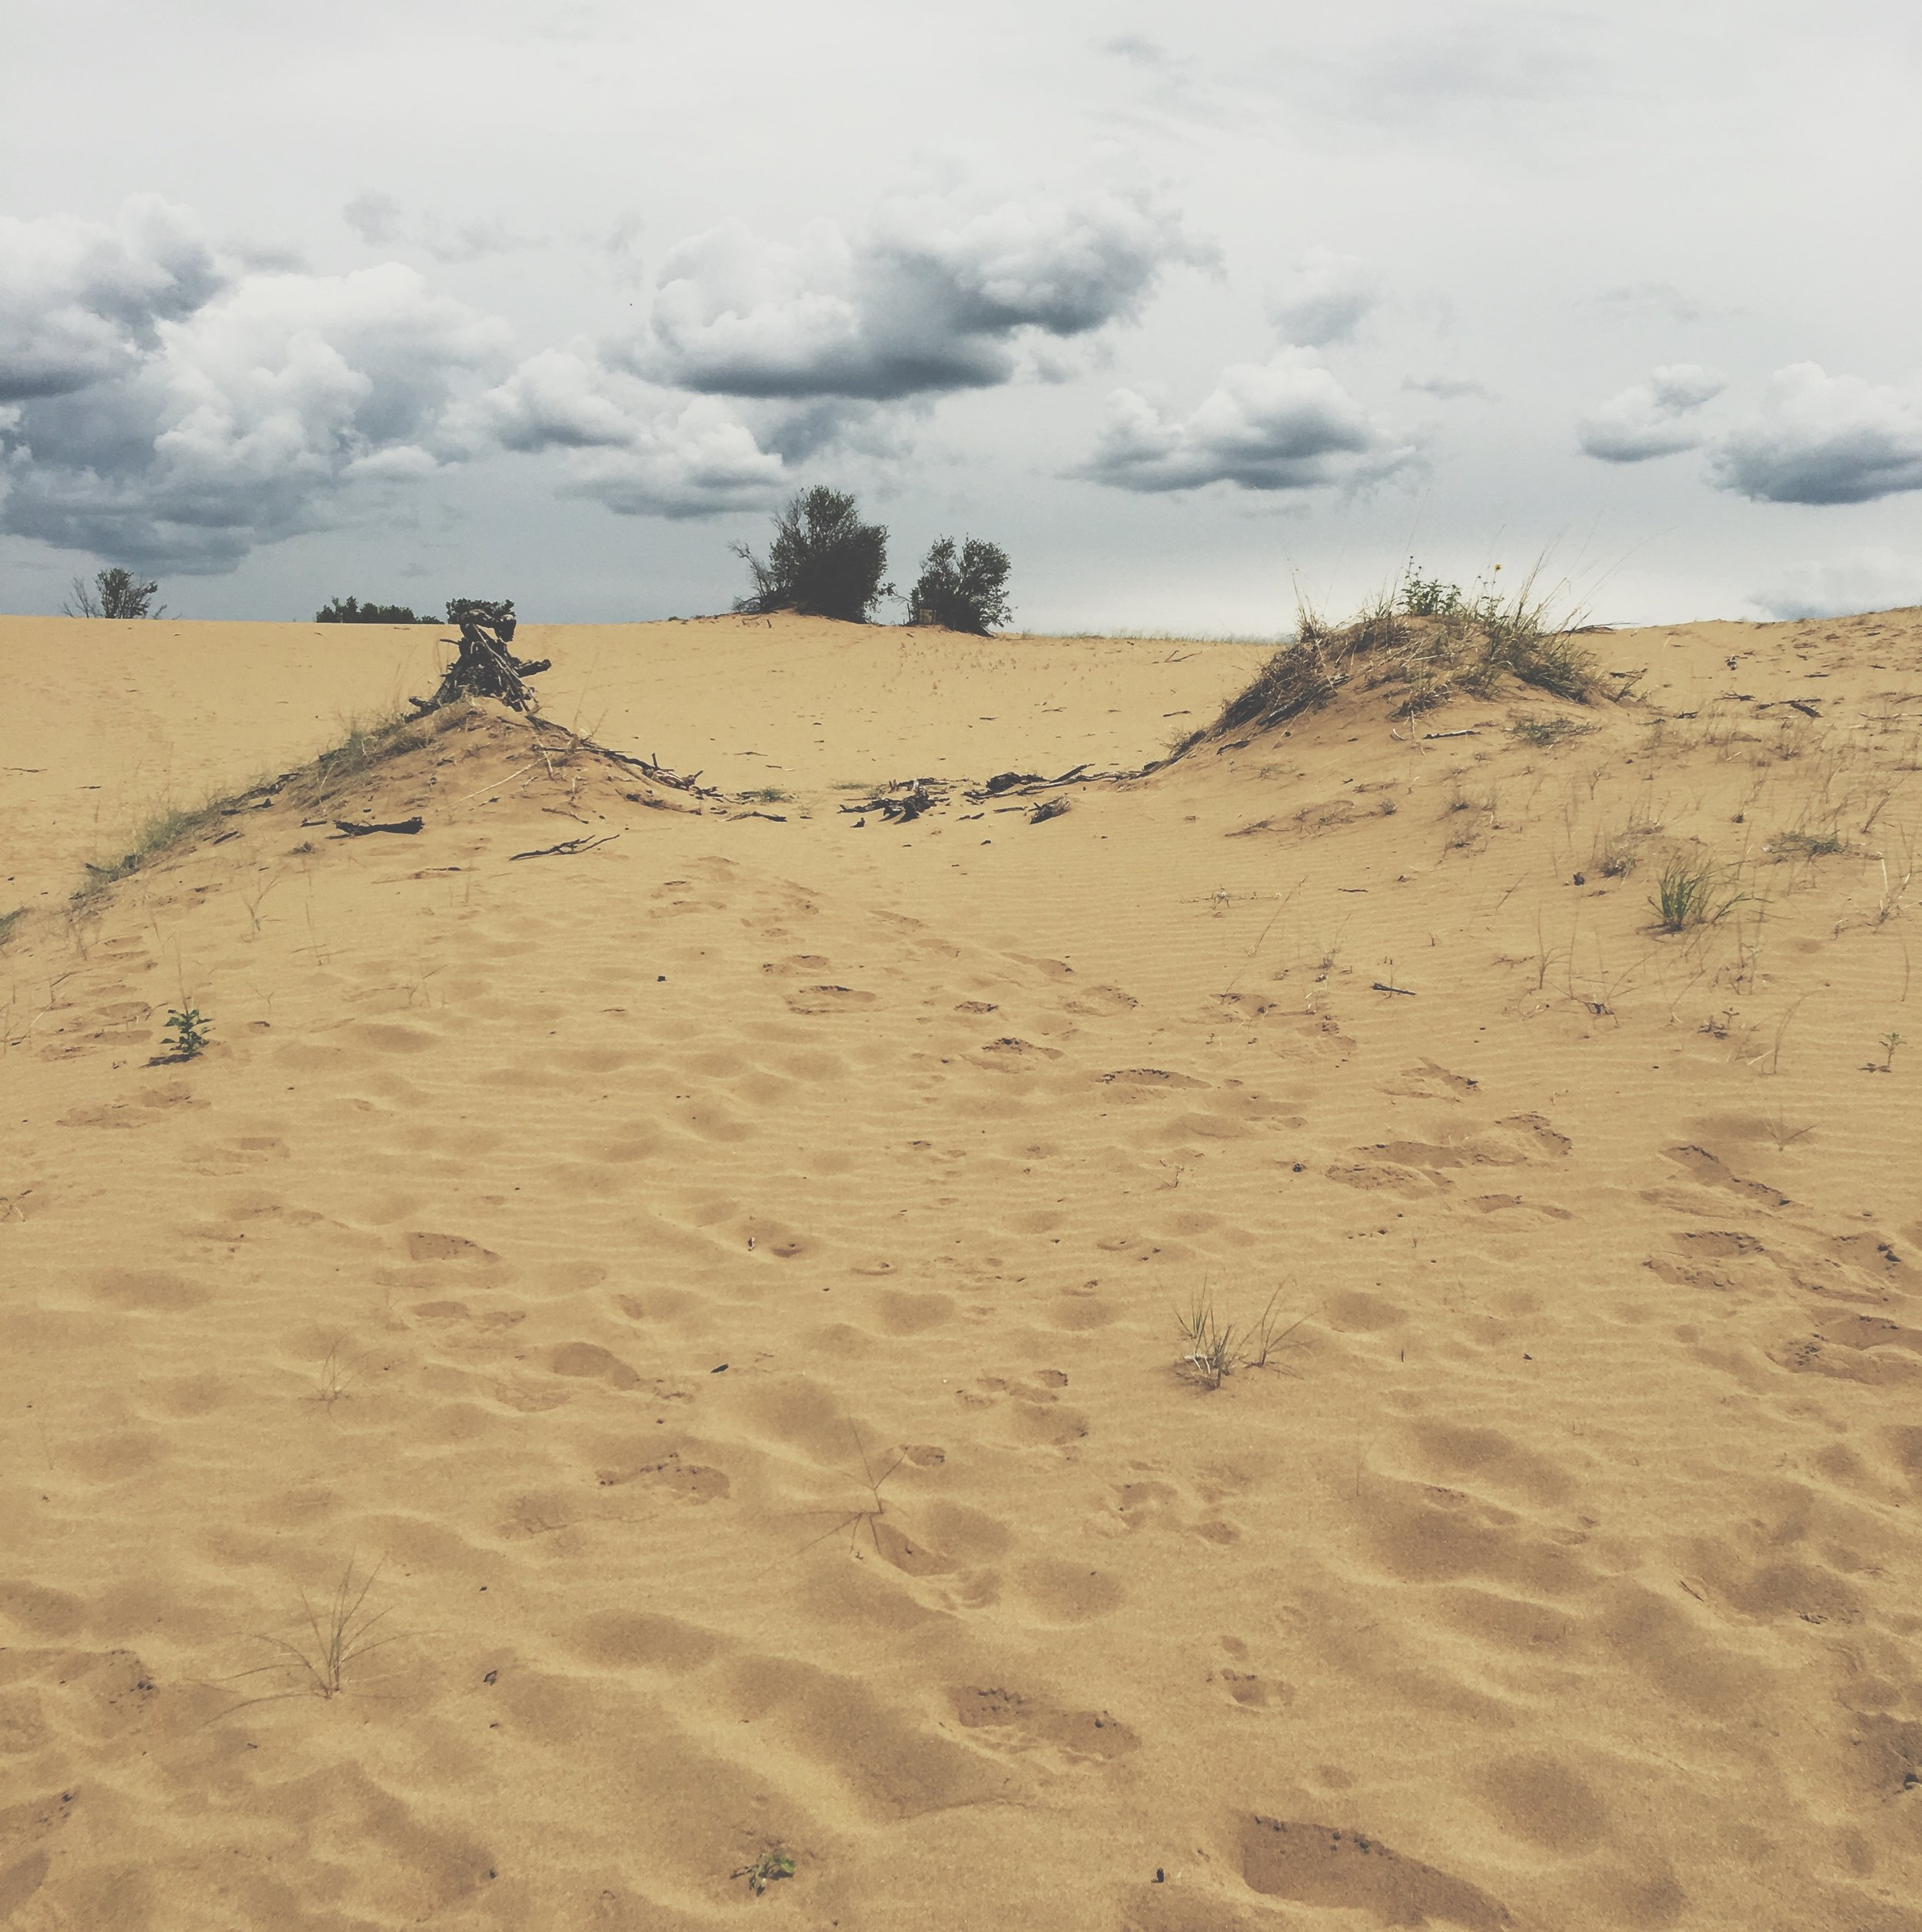 making my way up the 'path' to the head of the dune. this photo does not show clearly how steep the sandy climb actually was.